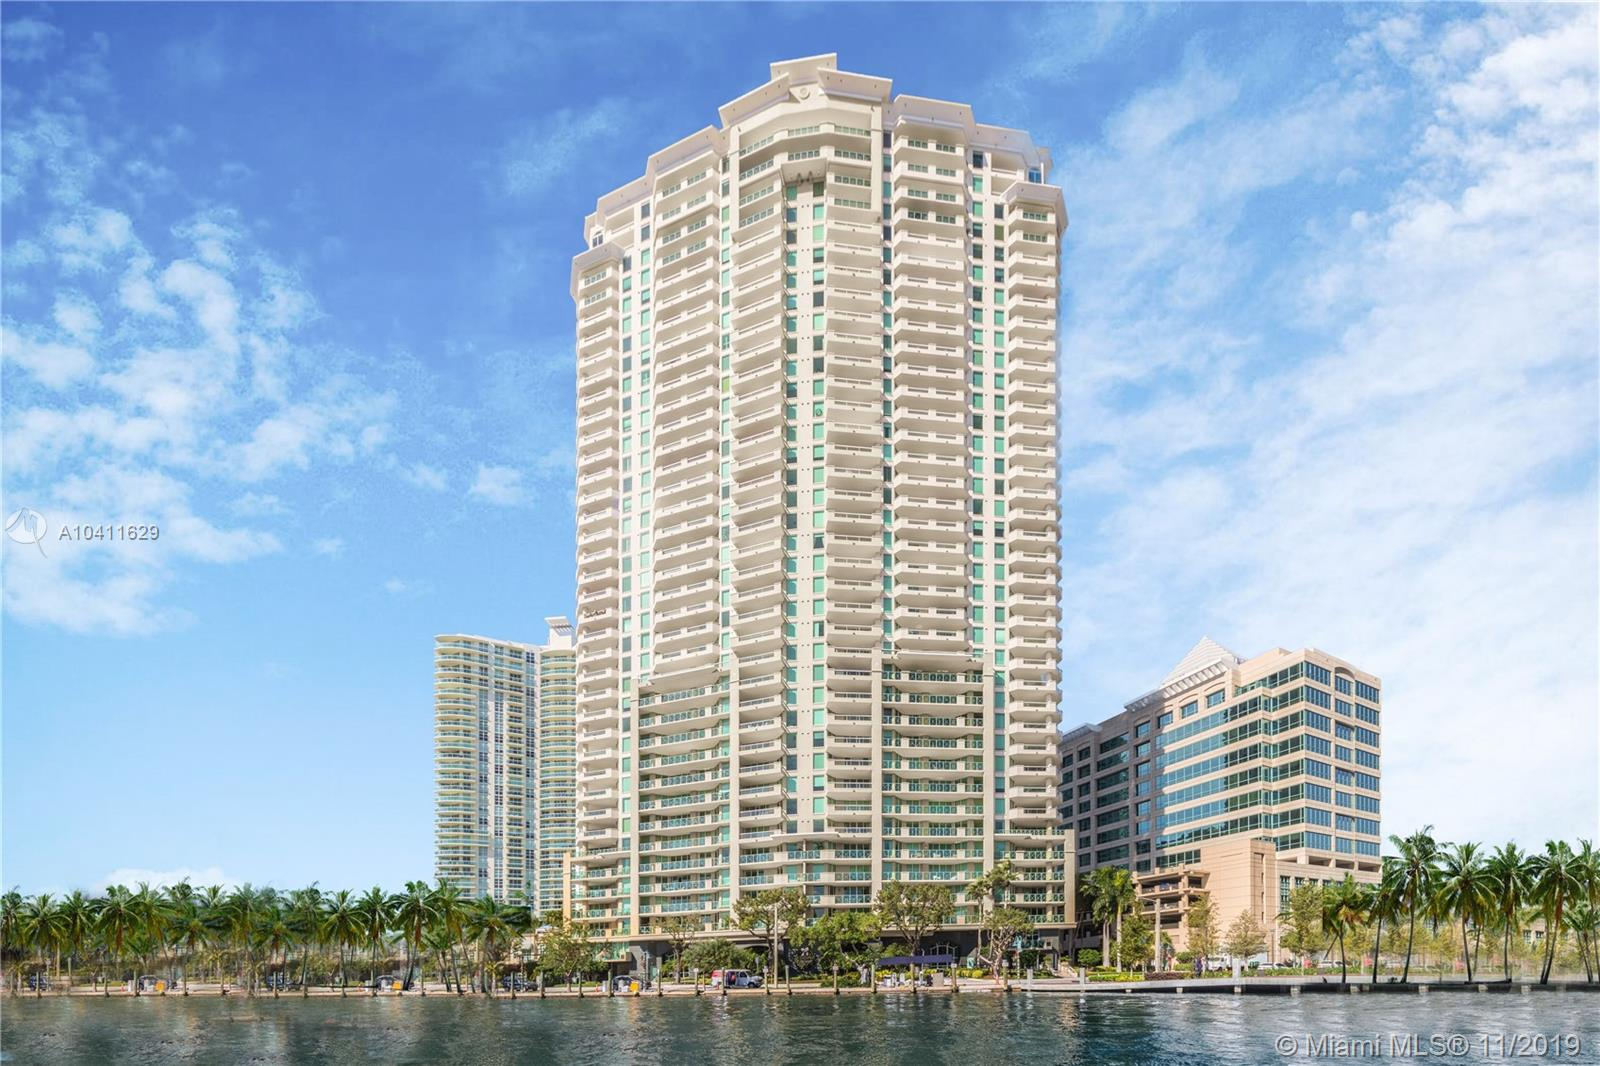 DUE TO COVID 19, ALL SHOWINGS WILL NOT BE POSSIBLE . PLEASE SEE VIRTUAL TOUR OR CONTACT LISTING AGENT FOR MORE INFORMATION.UNIT IS RENTED NOVEMBER 2019-NOV 2020 . OWNER WILL CONSIDER SALE WITH TENANT IN PLACE. UNOBSTRUCTED VIEWS FROM 03 LINE. UNIT IS CURRENTLY RENTED UNTIL OCTOBER OF  2019.  LUXURIOUS CONDO IN PRESTIGIOUS LAS OLAS GRAND. PANORAMIC VIEWS OF RIVER, INTRACOASTAL, OCEAN & PORT. LOCATED IN ONE OF THE MOST SOUGHT AFTER ADDRESSES IN DOWNTOWN FT. LAUDERDALE/LAS OLAS. THIS UNIT FEATURES MARBLE FLOORS THROUGHOUT, GOURMET GRANITE KITCHEN, TOP OF THE LINE APPLIANCES, CUSTOM PAINT, LIGHT FIXTURES. ENJOY EAST VIEWS OF RIVER, INTRACOASTAL AND OCEAN WITH WEST VIEWS OF DOWNTOWN. BUILDING FEATURES 5 STAR AMENITIES INCLUDING A GYM, VALET PARKING, 24 HR SECURITY, & A POOL.